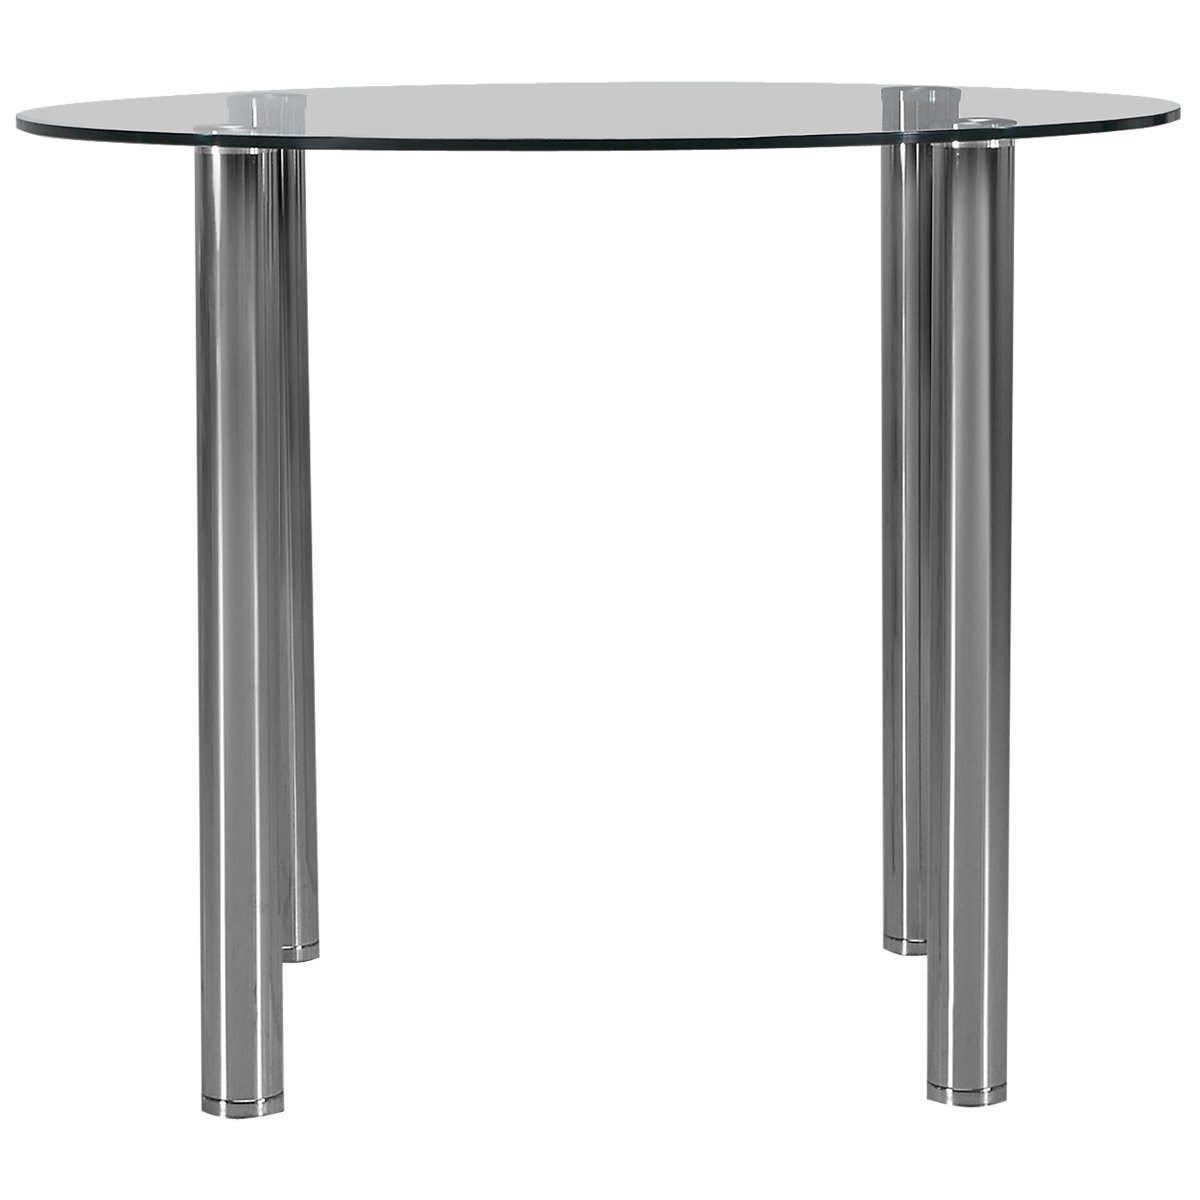 Napoli Glass Glass Round High Dining Table